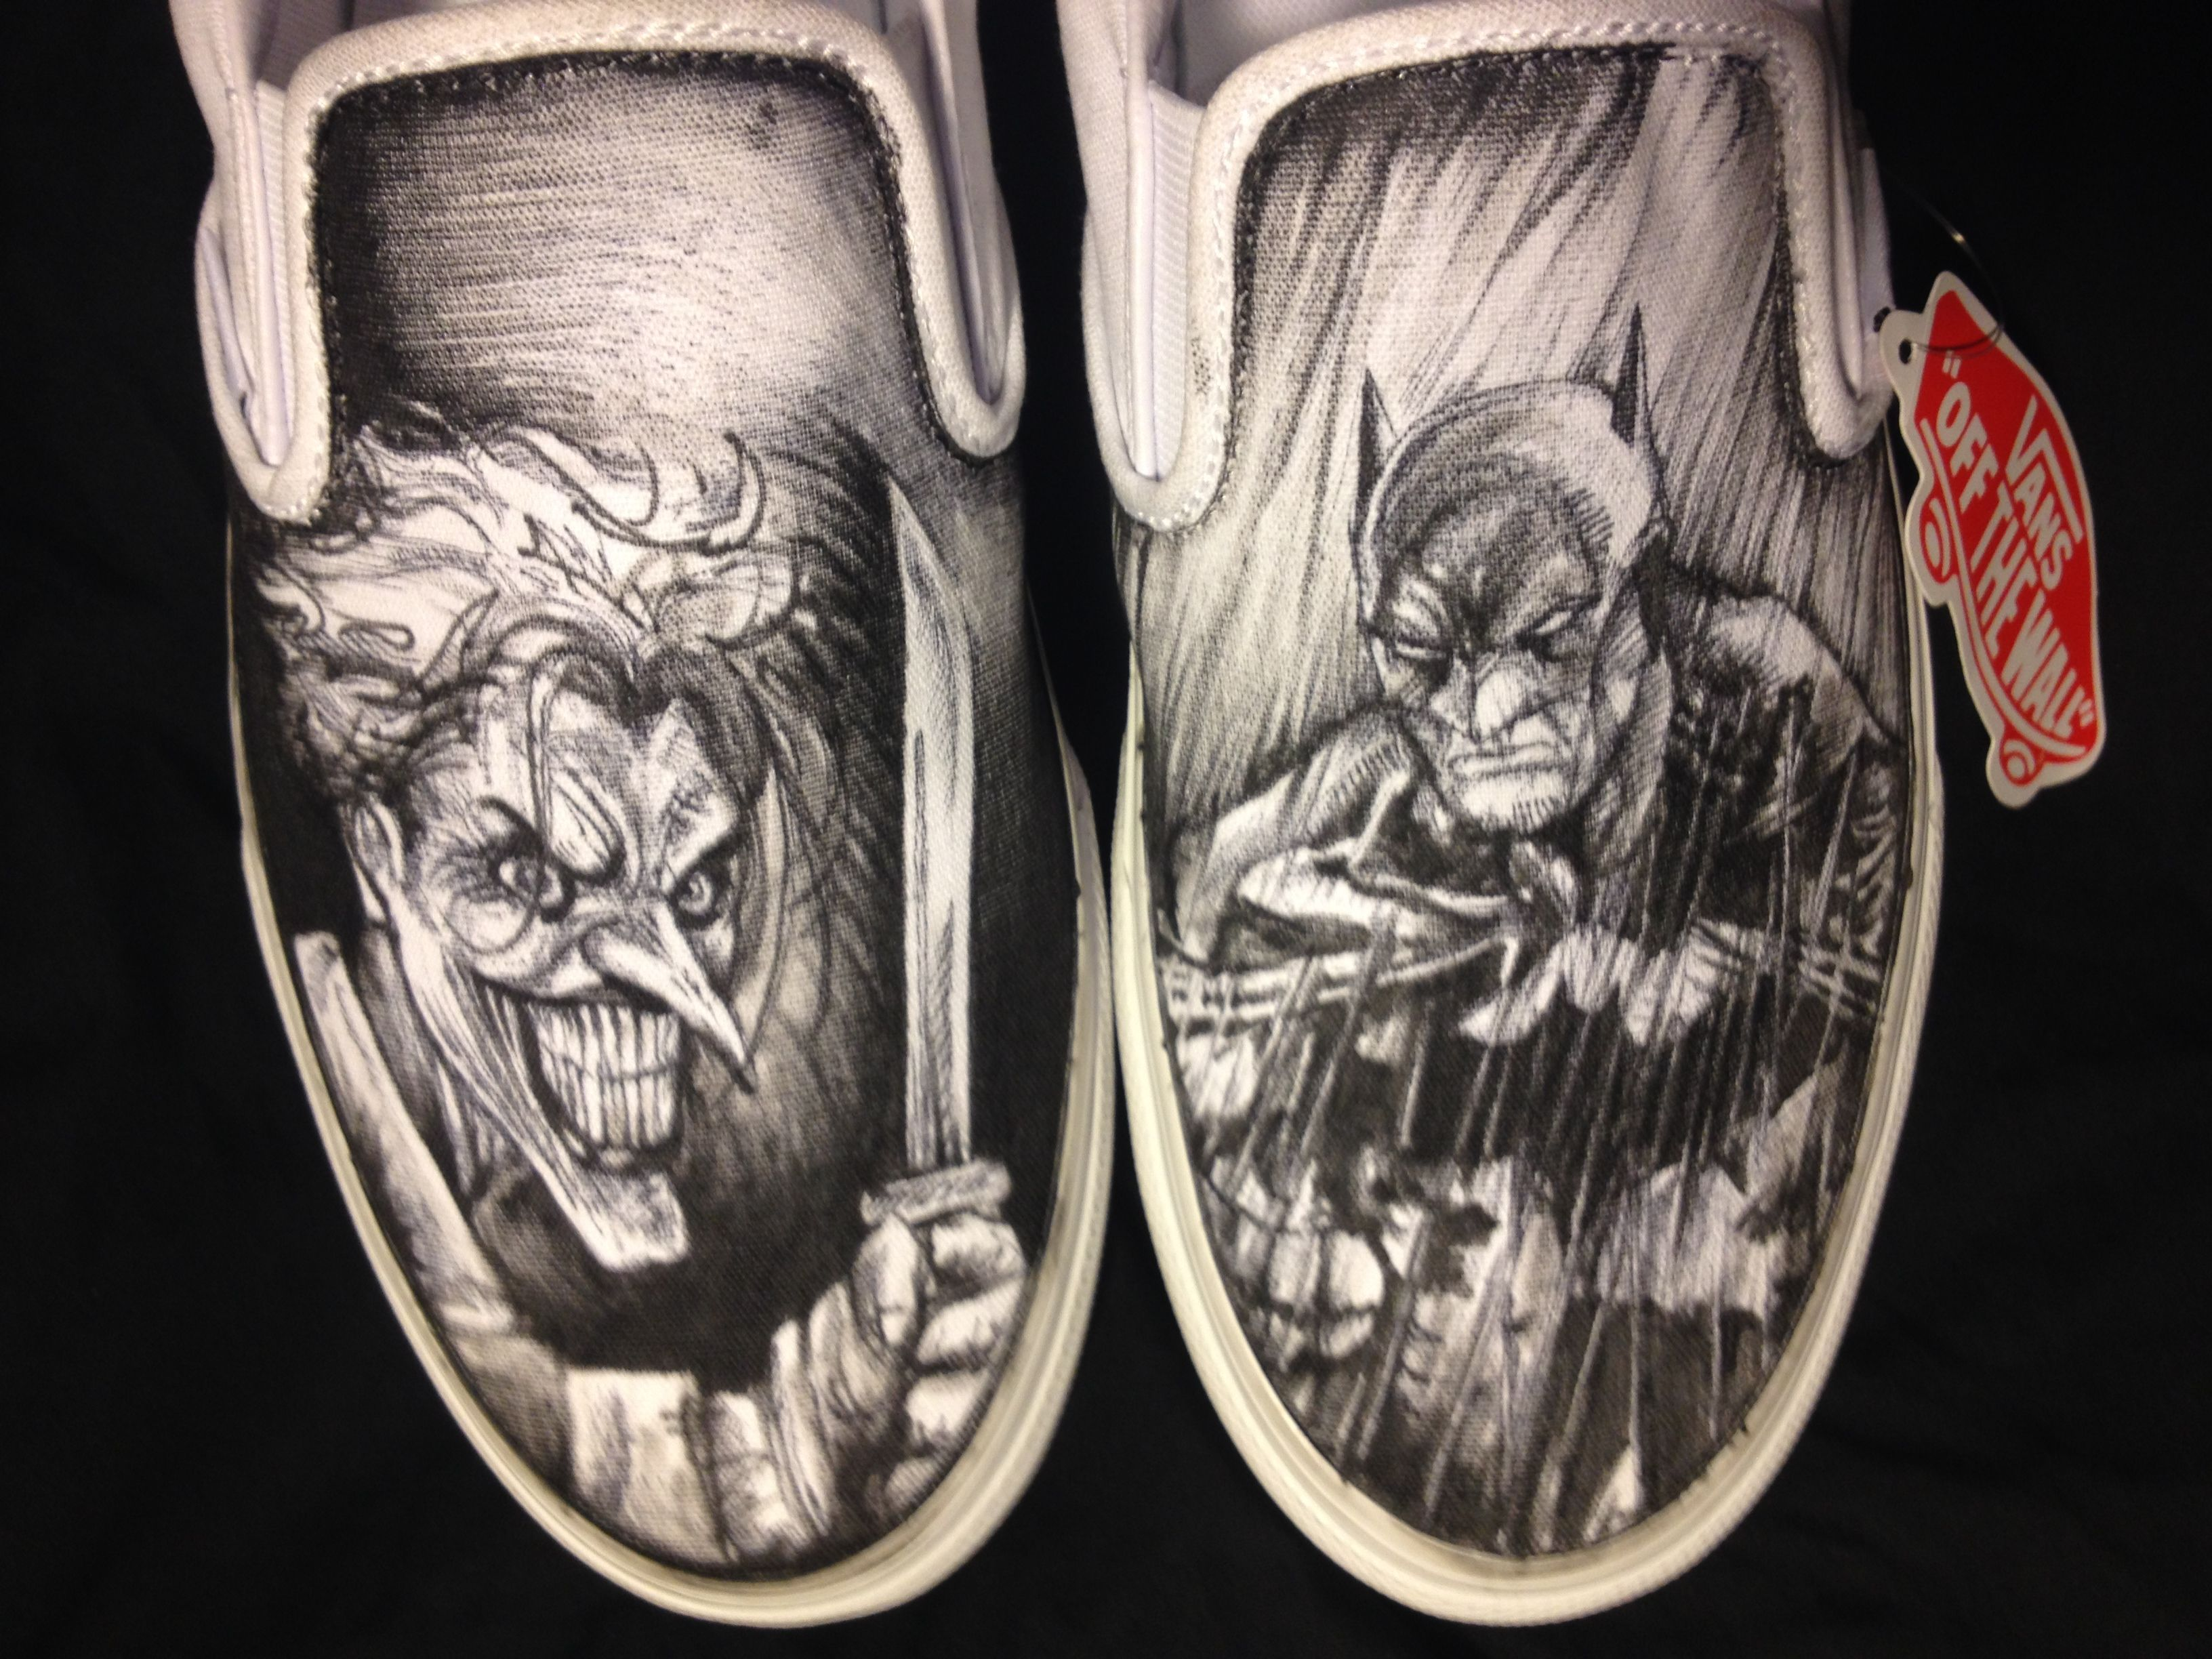 Drawn vans custom drawn Custom And Made to Hand